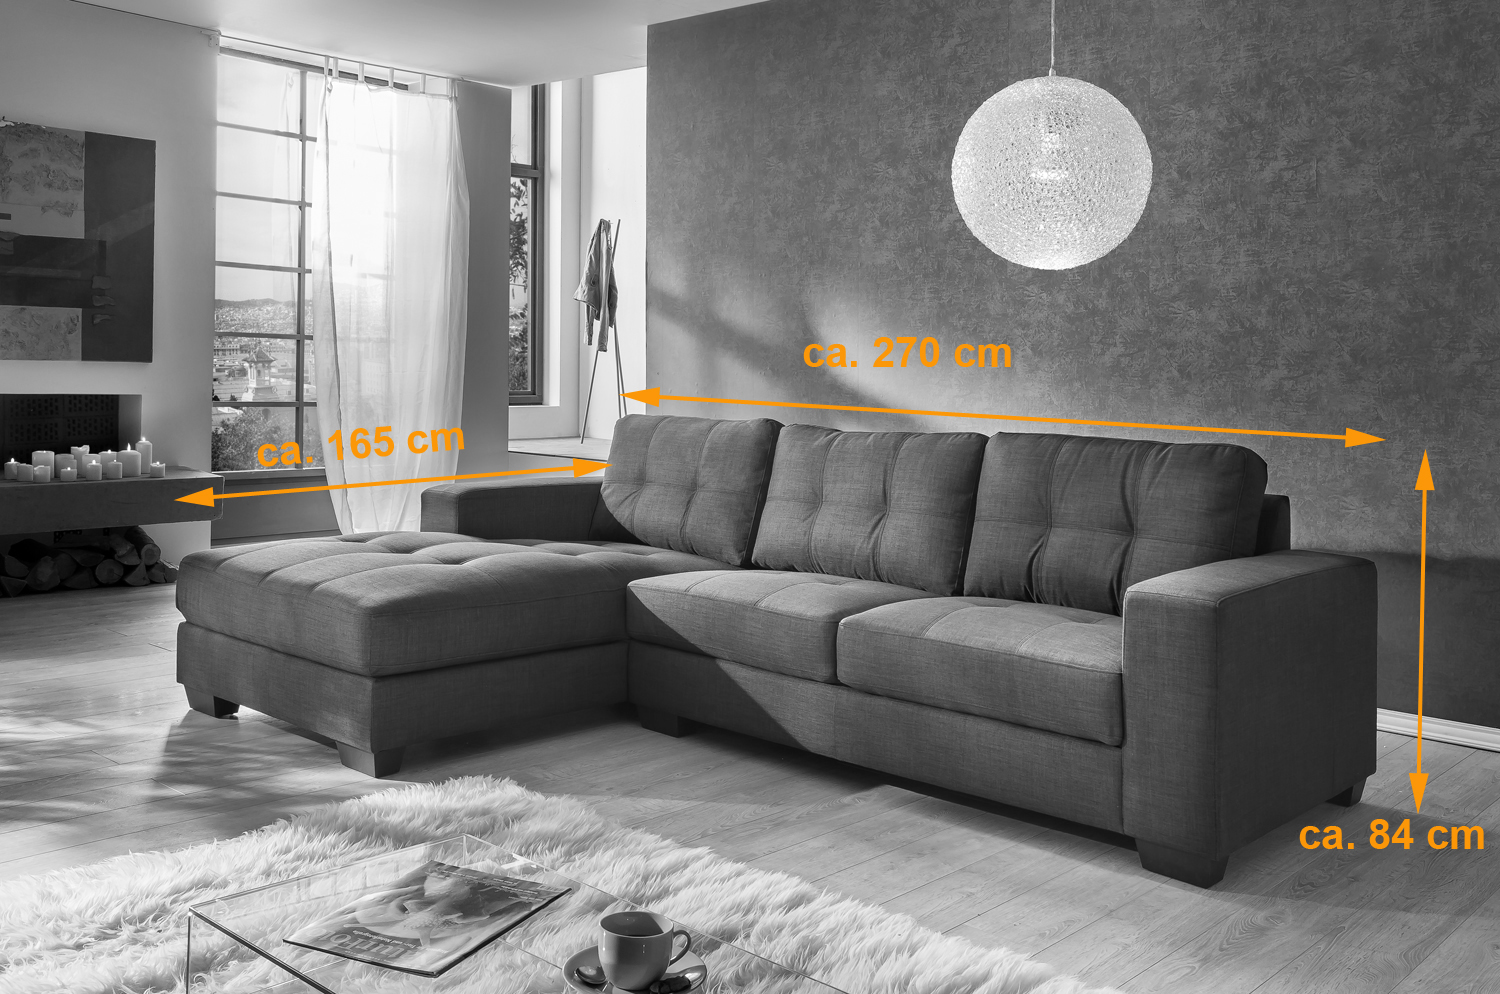 sam ecksofa braun aviano stoff polsterecke 165 x 270 cm auf lager. Black Bedroom Furniture Sets. Home Design Ideas